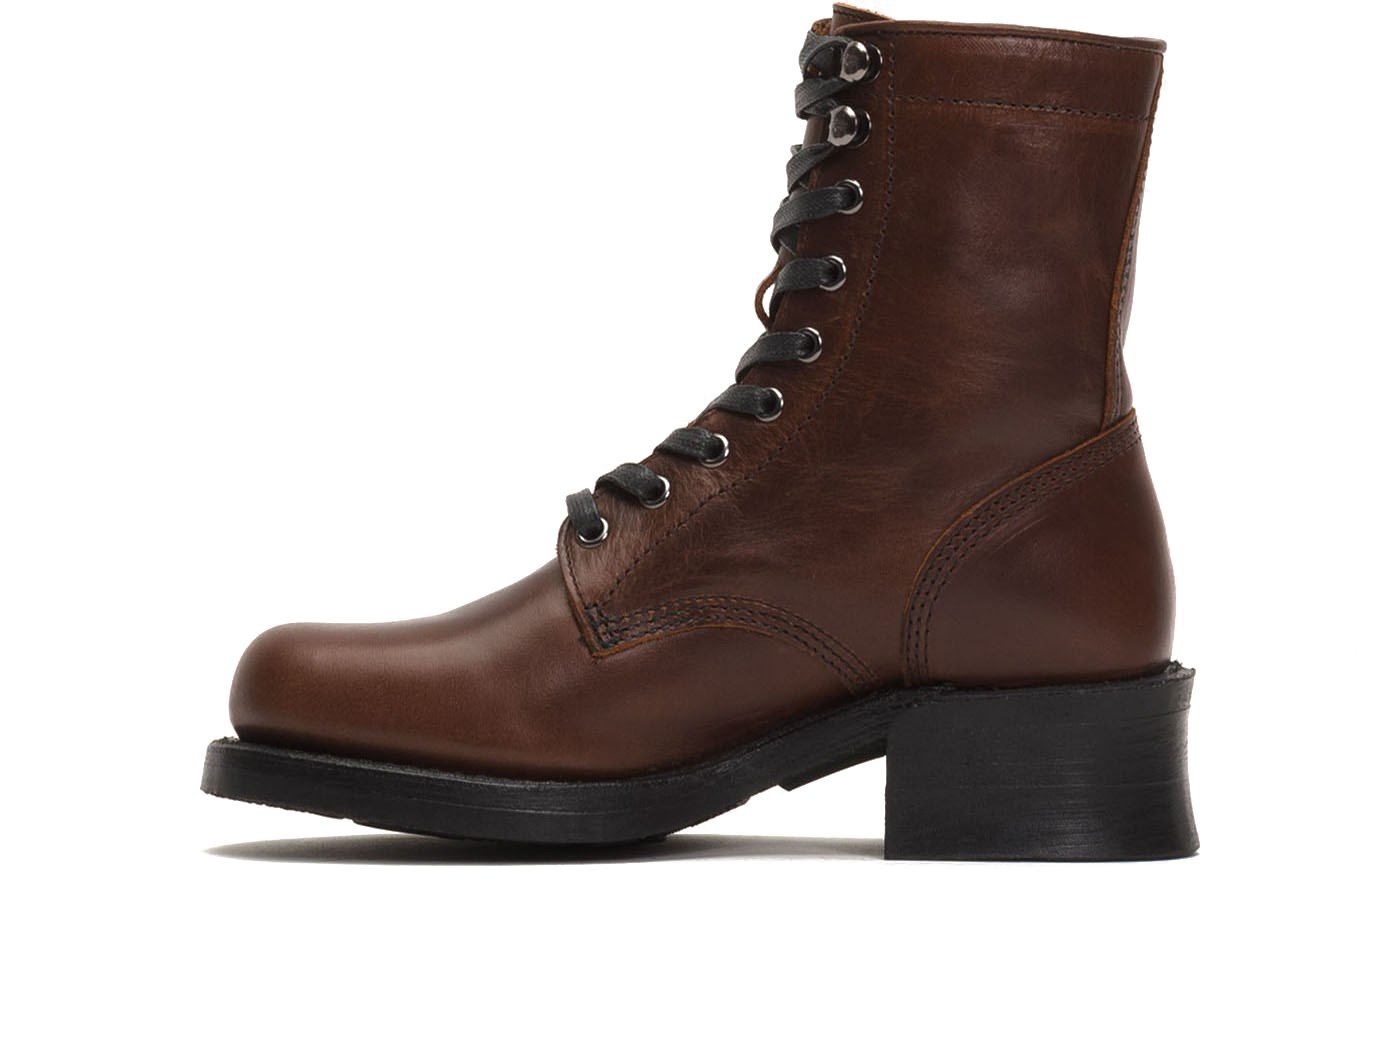 FRYE Womens Engineer Combat B06XHR963X 6 B(M) US|Cognac